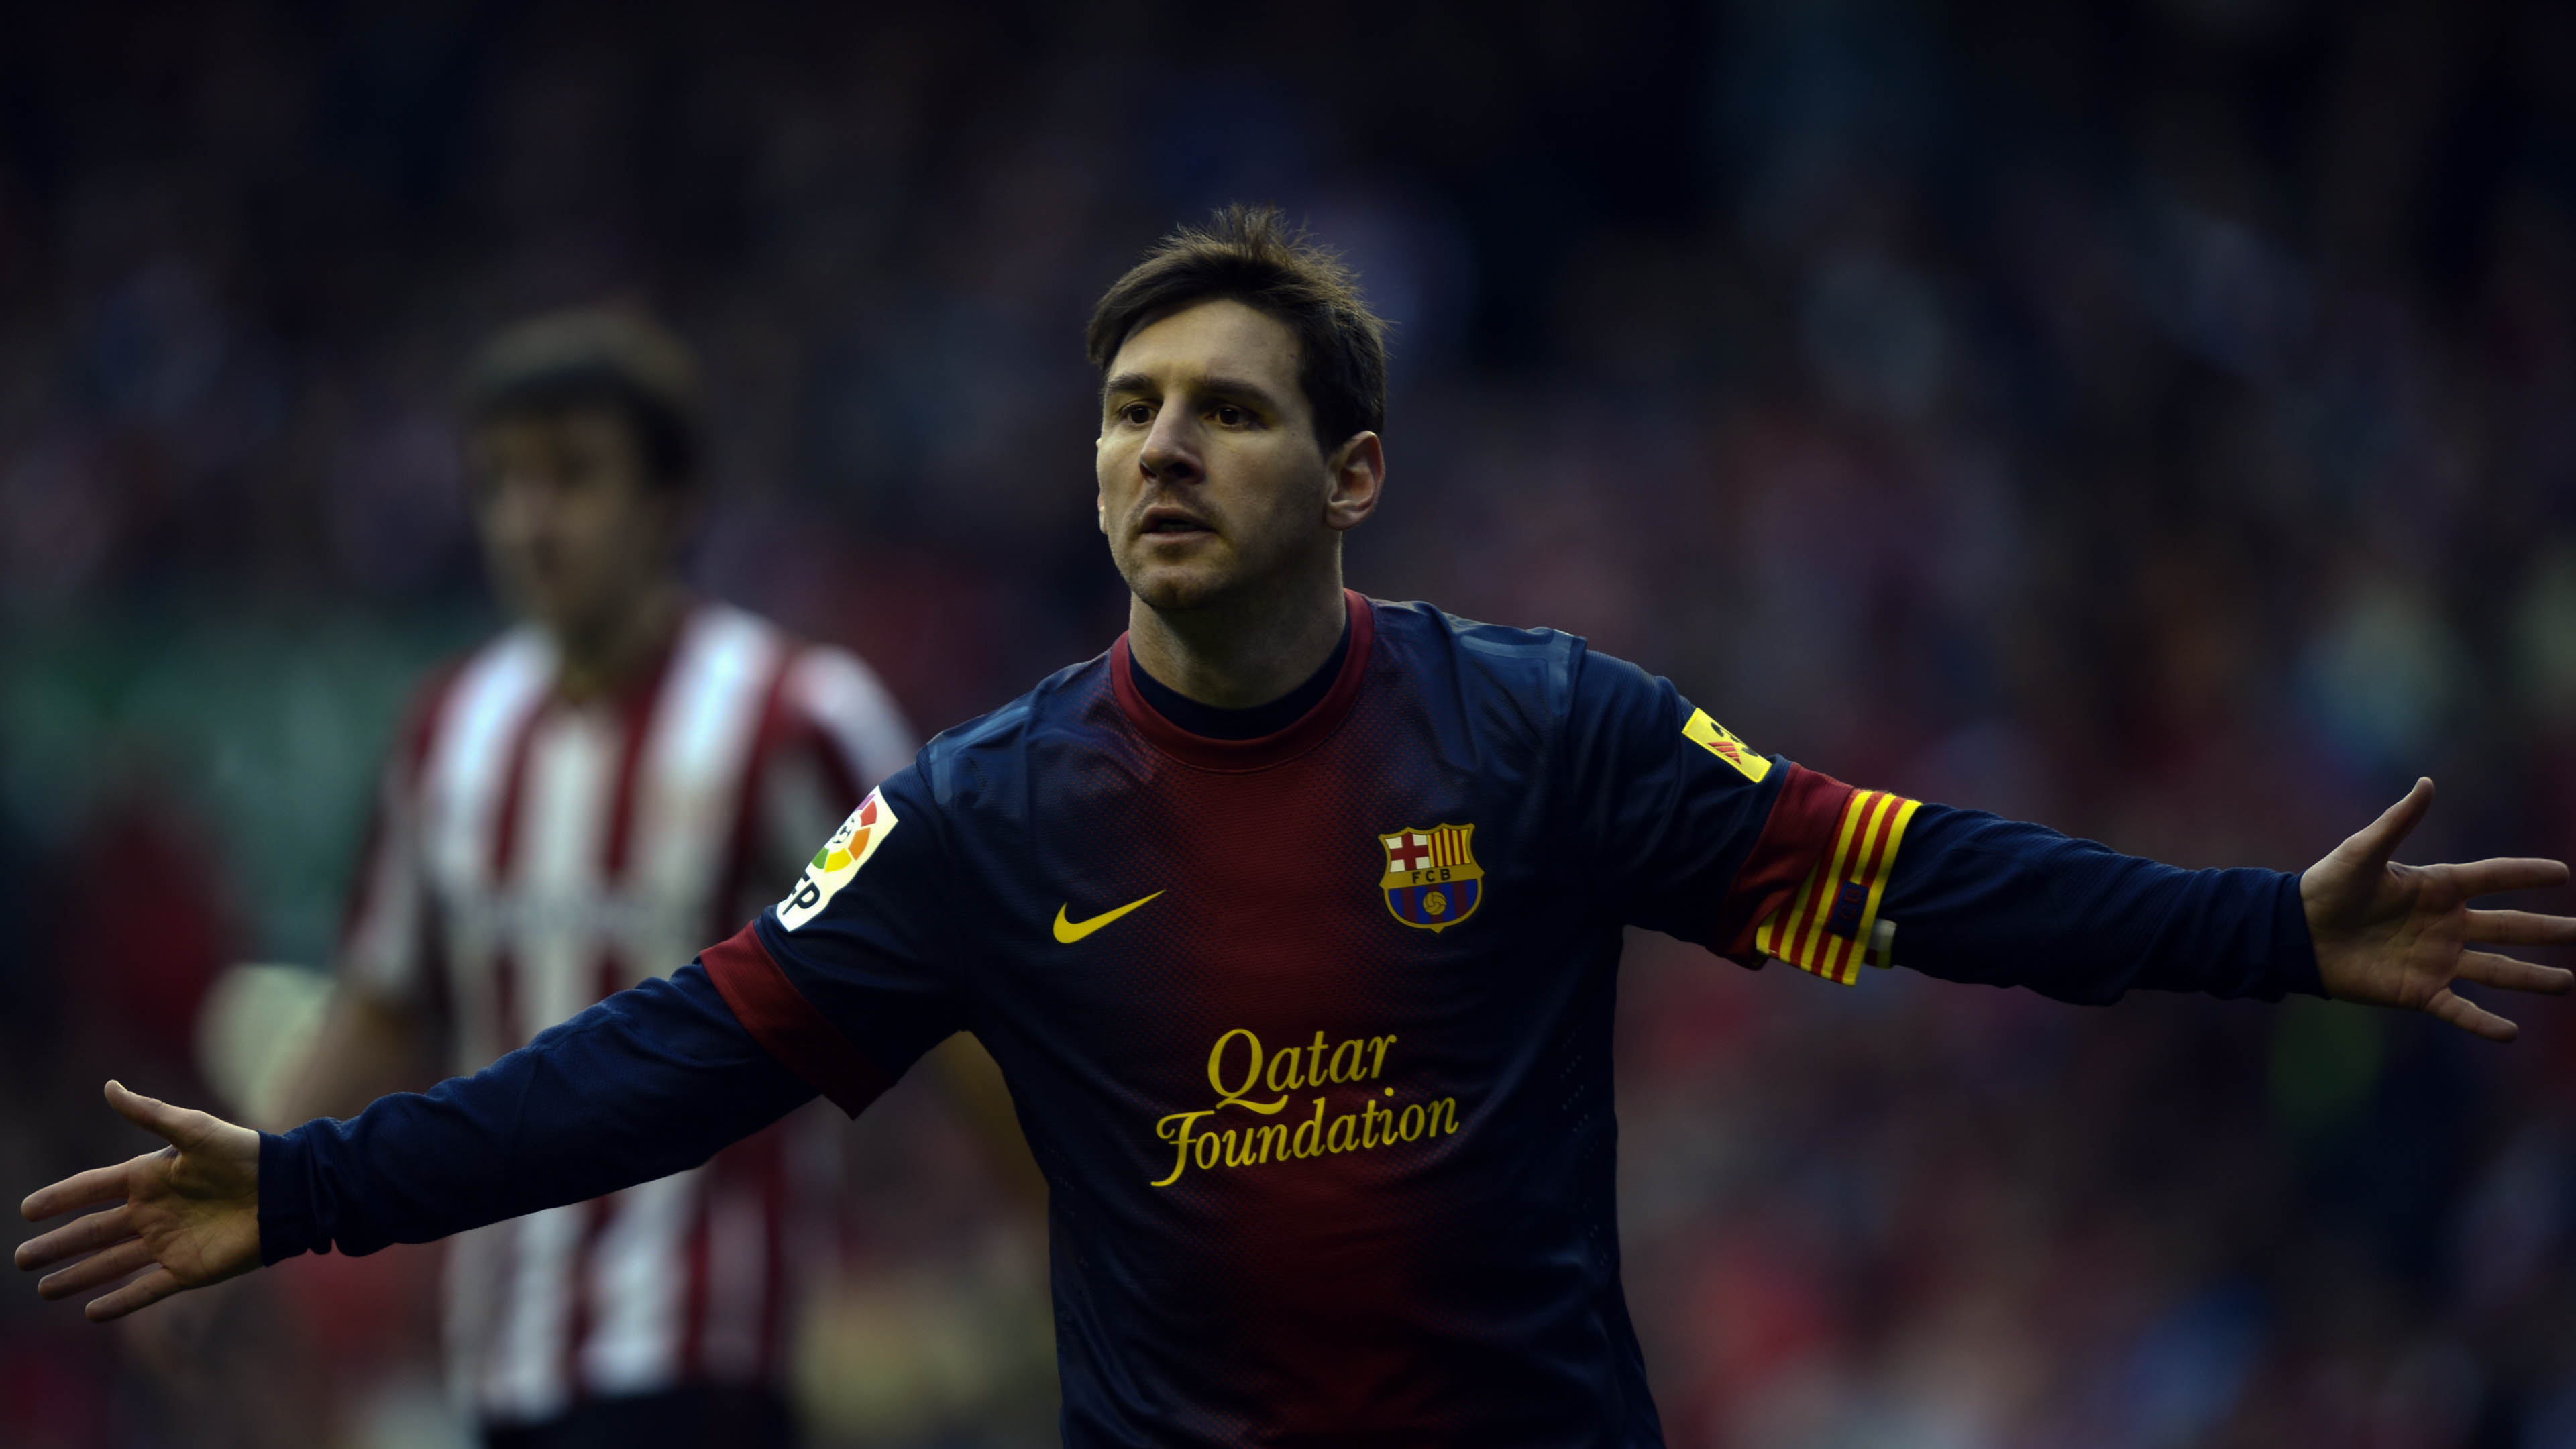 Lionel Messi - Messi Hd , HD Wallpaper & Backgrounds